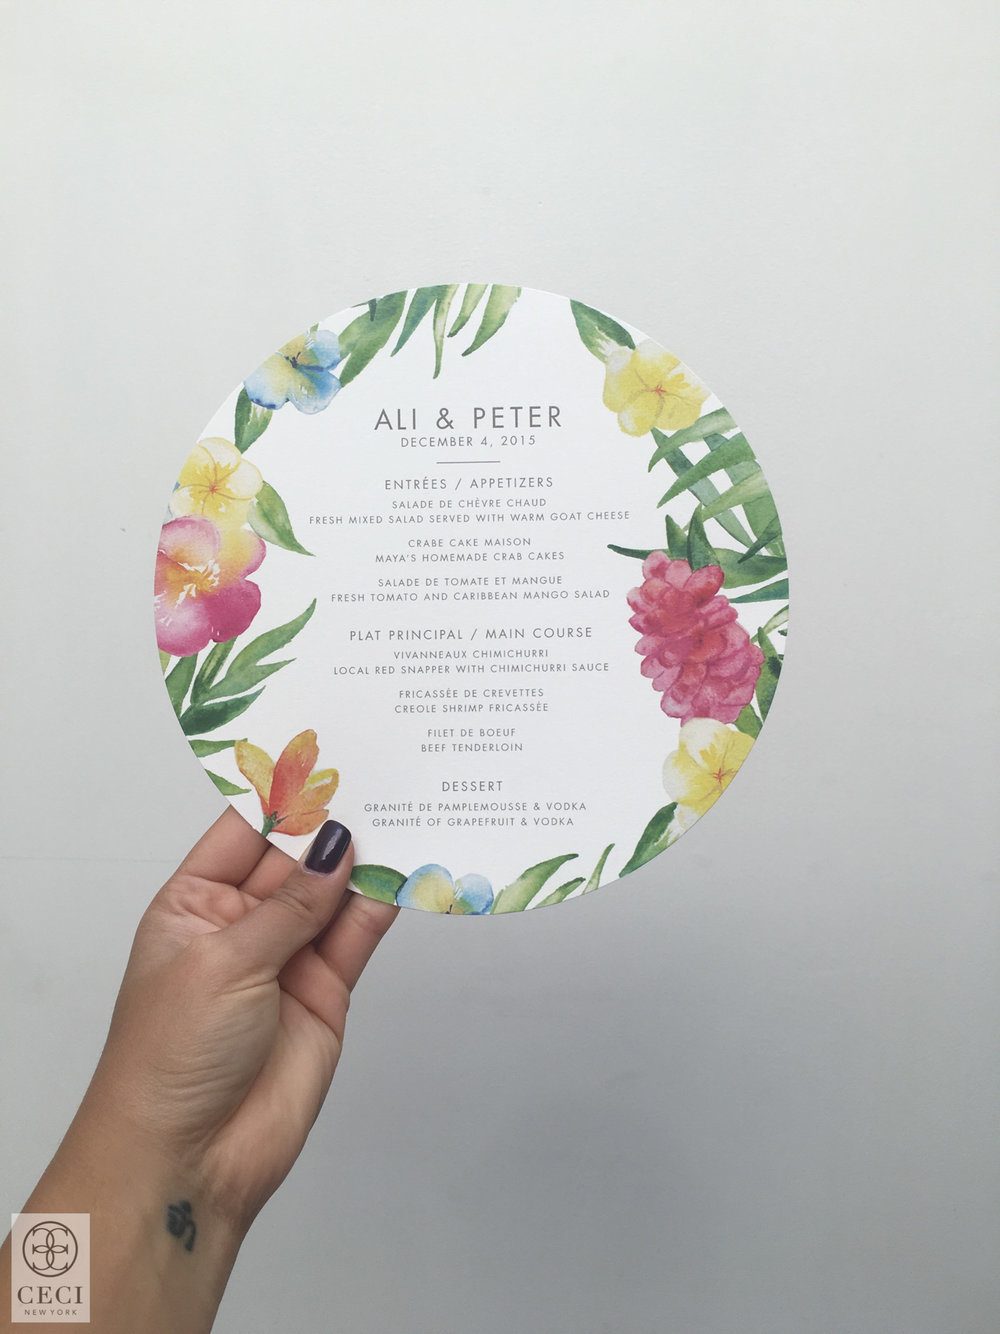 Ceci_New_York_Ceci_Style_Ceci_Johnson_Luxury_Lifestyle_Destination_St._Barts_Wedding_Letterpress_Watercolor_Floral_Hand_Painted_Inspiration_Design_Custom_Couture_Personalized_Invitations_ 2.jpg